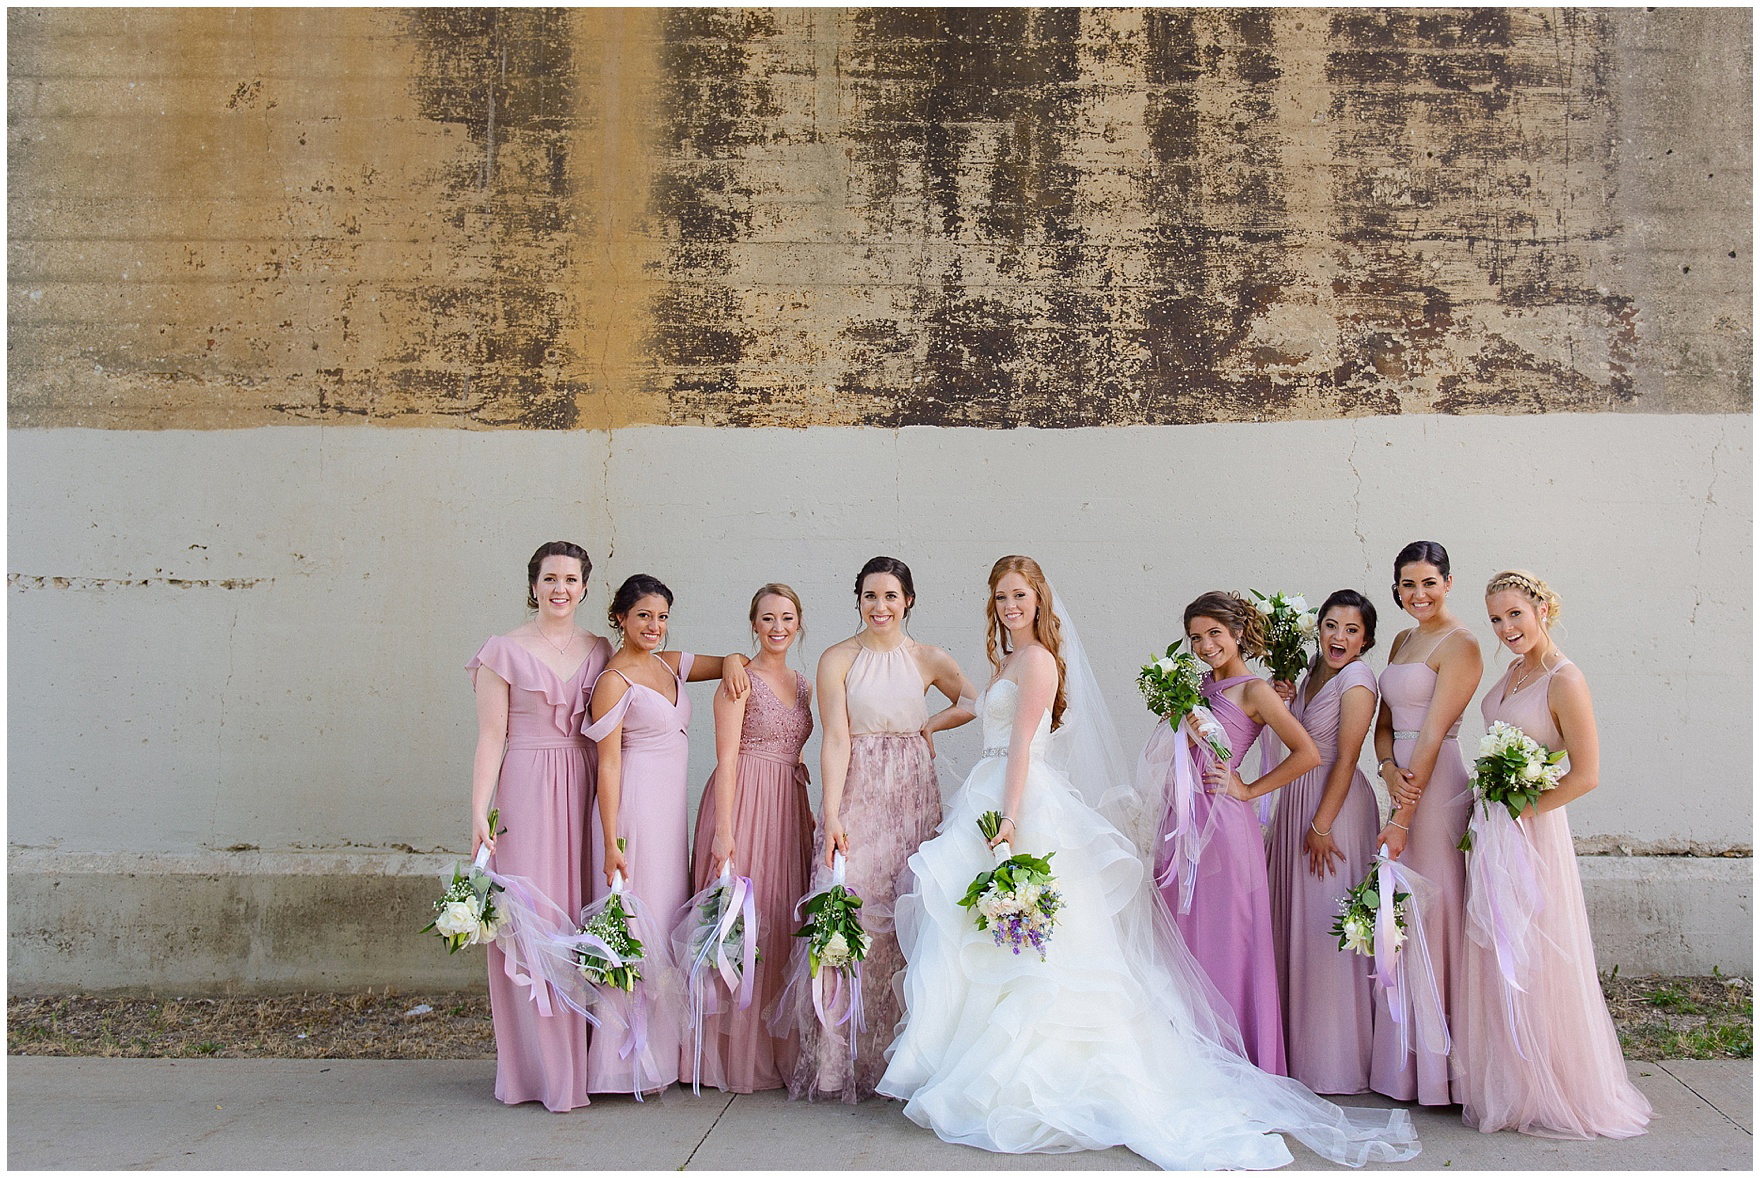 The bridal party poses under an old bridge in South Bend after a University of Notre Dame wedding.